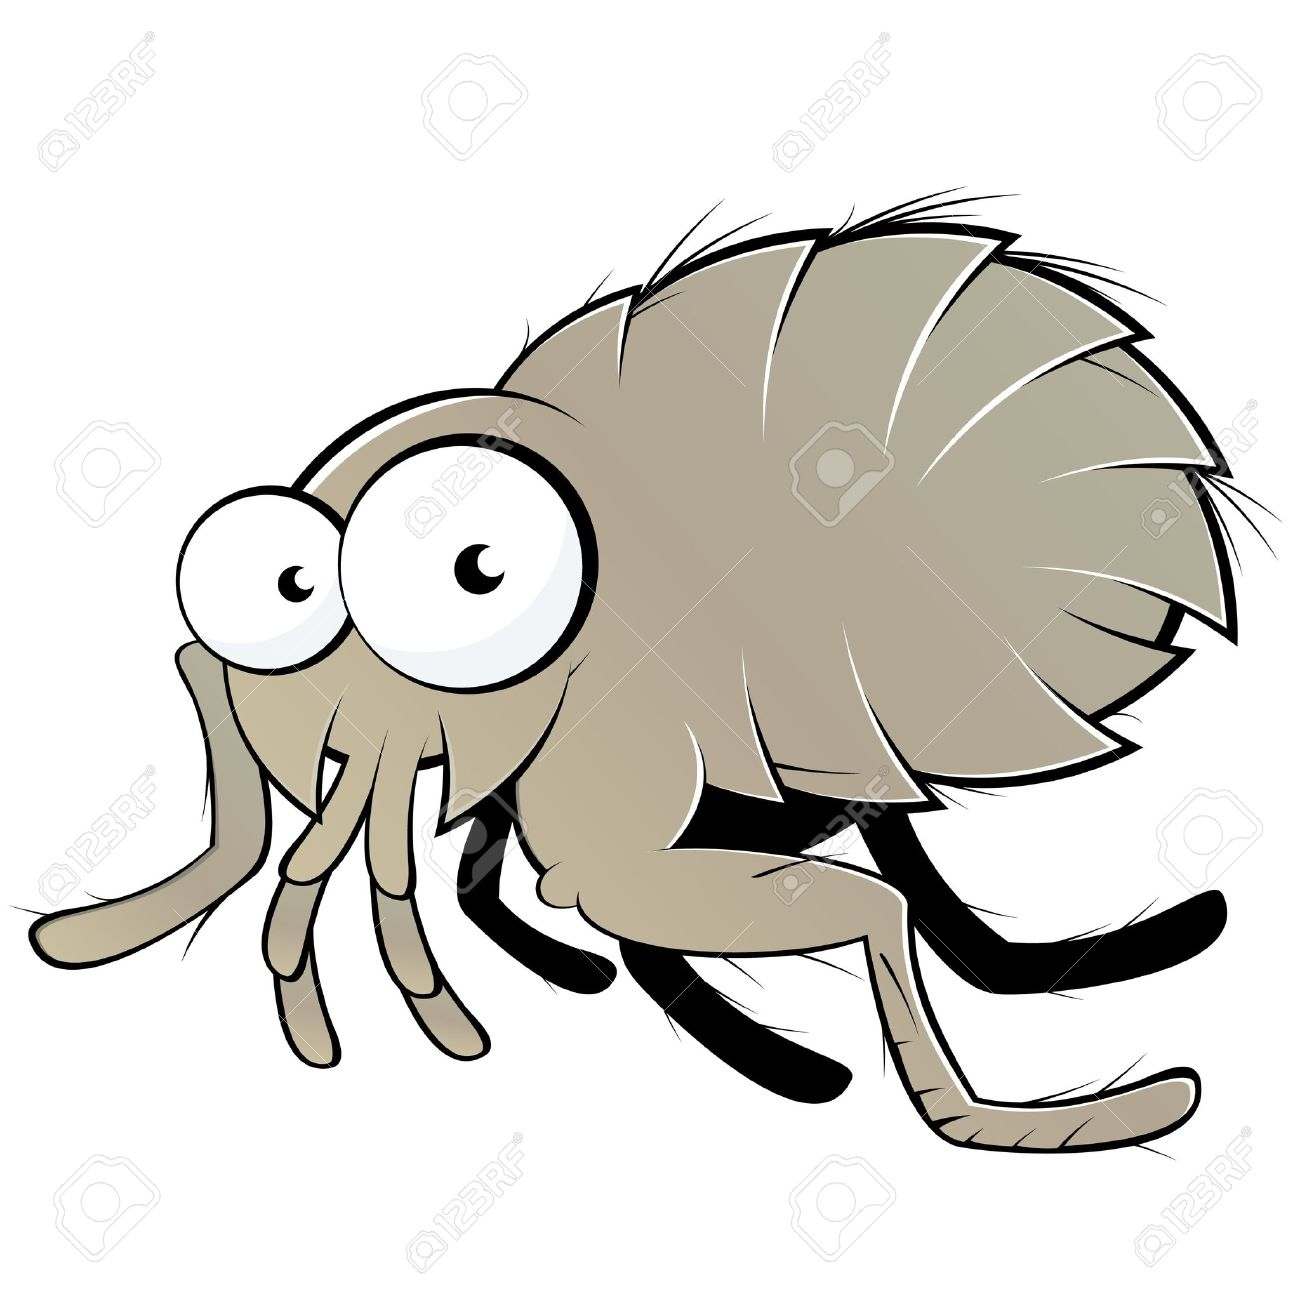 Bugs clipart flea > Cartoon camping And Cartoon